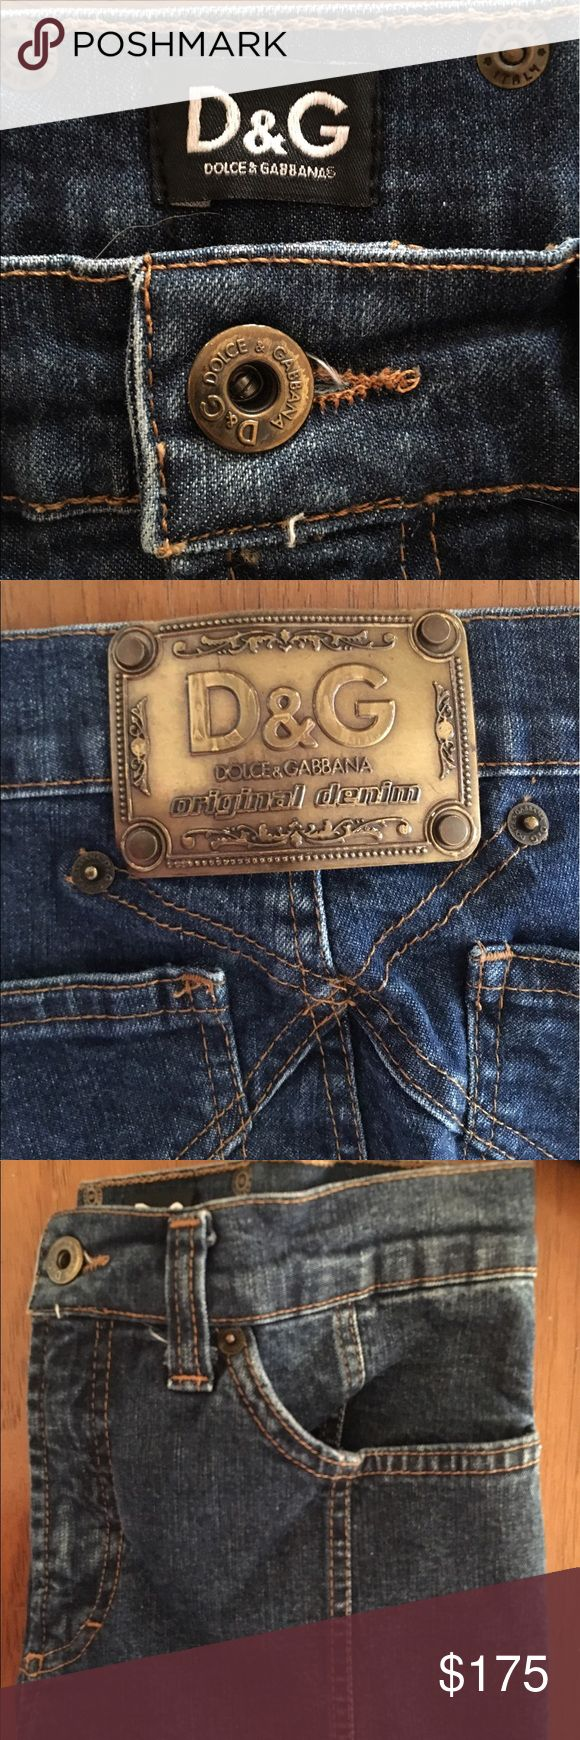 """Dolce & Gabana Straight Leg Jeans These K I L L E R Dolce & Gabana Straight Leg Jeans are so unique and are for sure a statement piece essential for any wardrobe! With a mid rise fit, cut them into shorts for a cool and funky summer look! The metal plated DG logo (back) is sure to stand out! Disclaimer( I'm 5'1"""" and these were a few inches too long for me, it fit all the right places though) Dolce & Gabbana Jeans Straight Leg"""